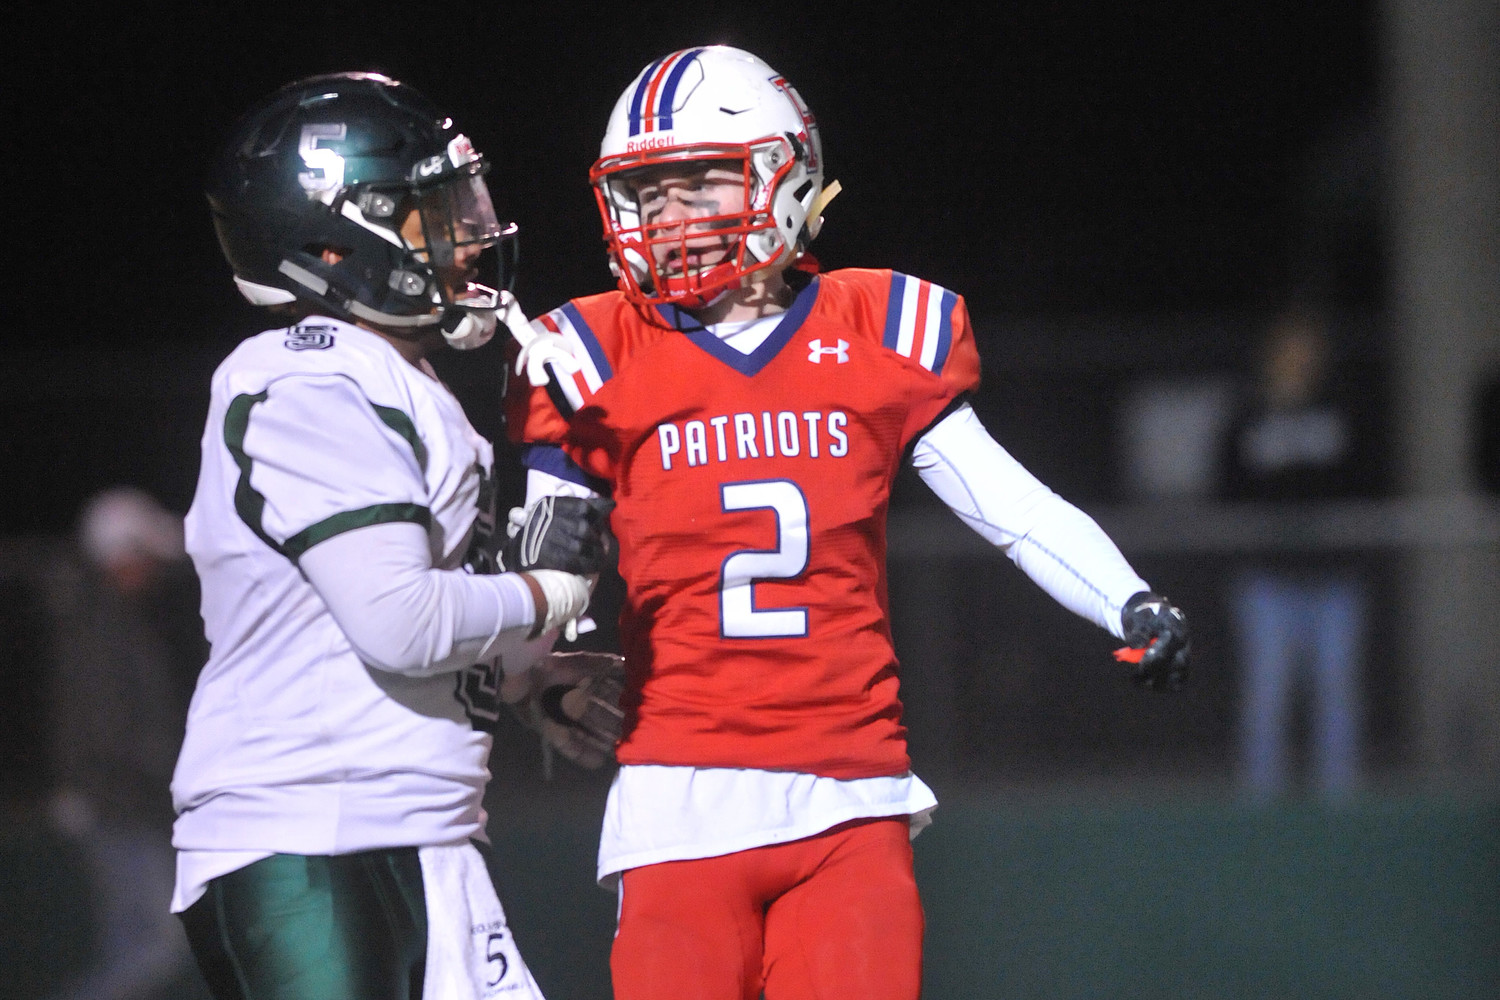 Portsmouth's Connor Stone (right) gets wrapped up by Cranston East's Rayveon DeOliveira after the Patriots' final drive stalled short Saturday night.